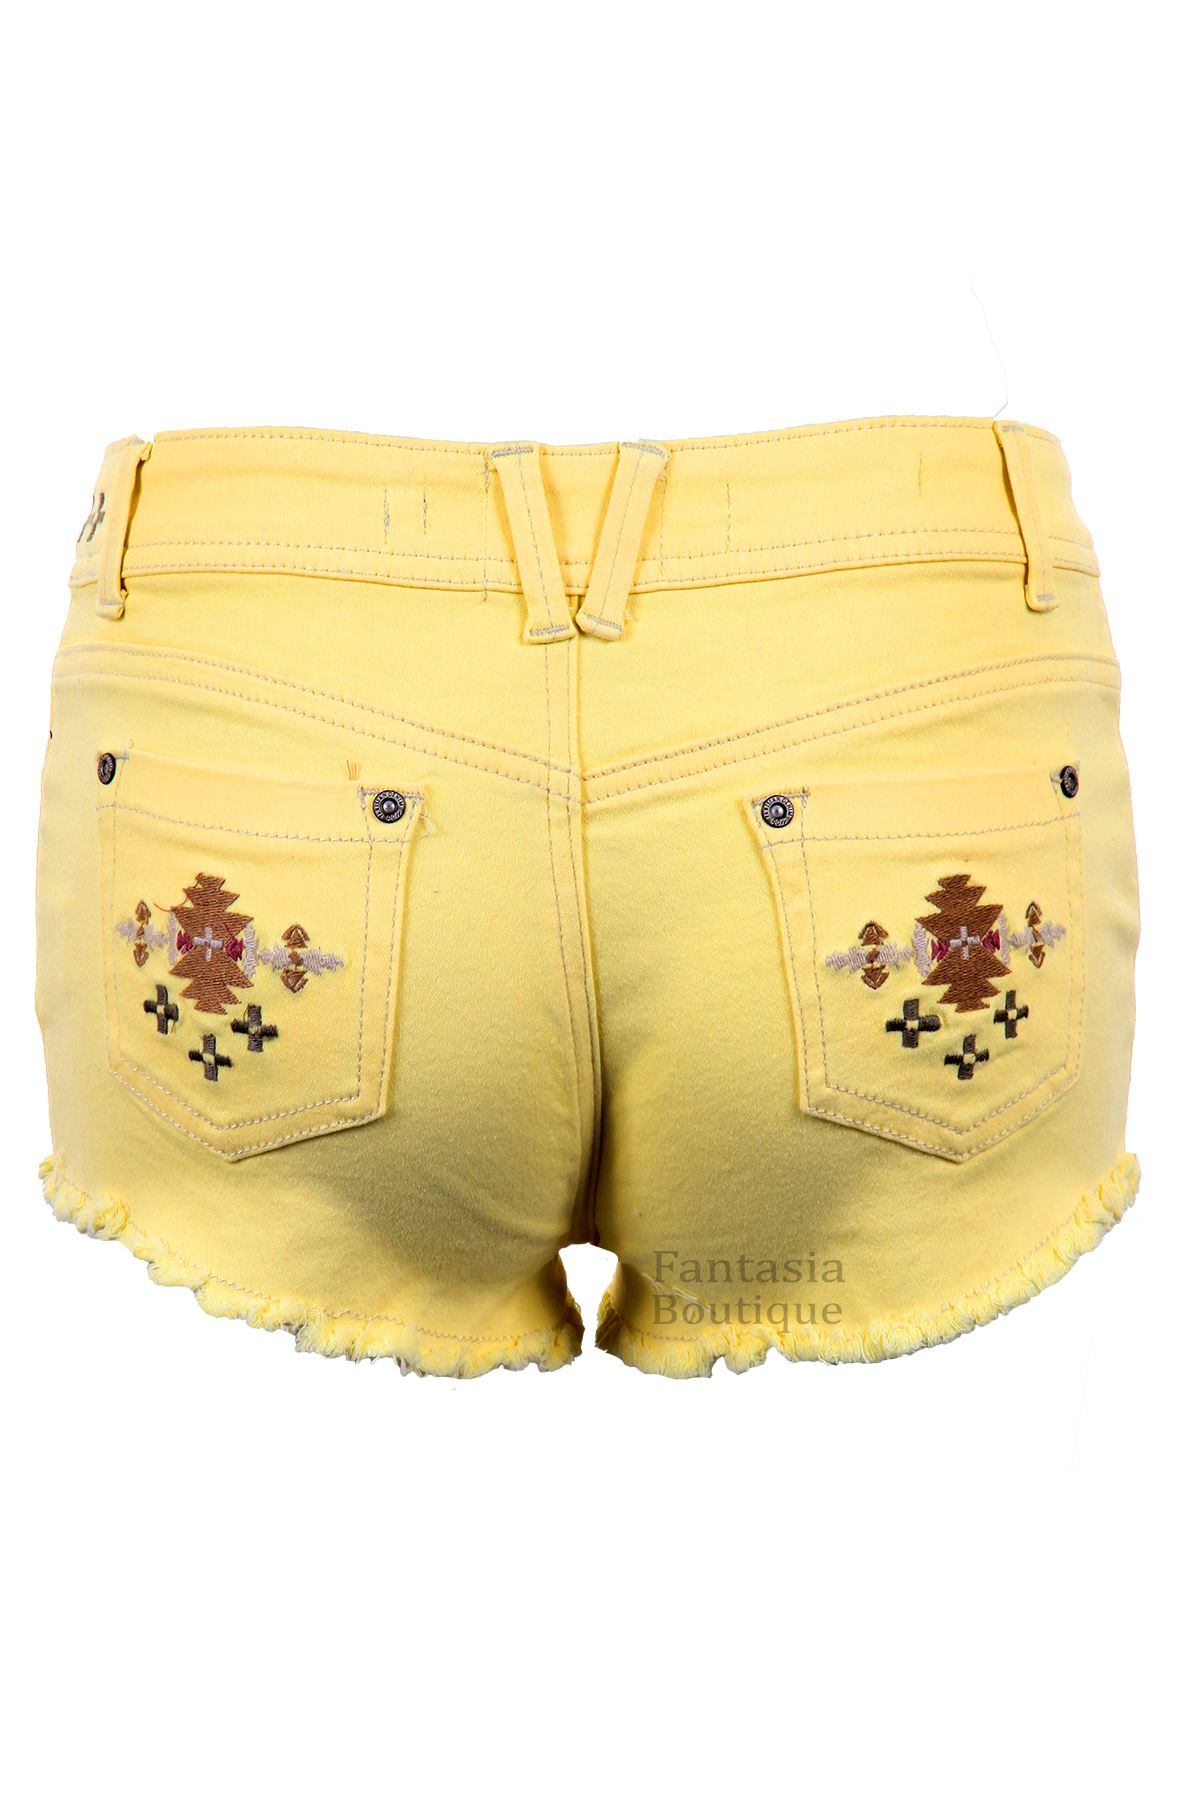 Ladies Denim Pastel Coloured Aztec Summer Shorts Women/'s Fitted Hotpants 6-14